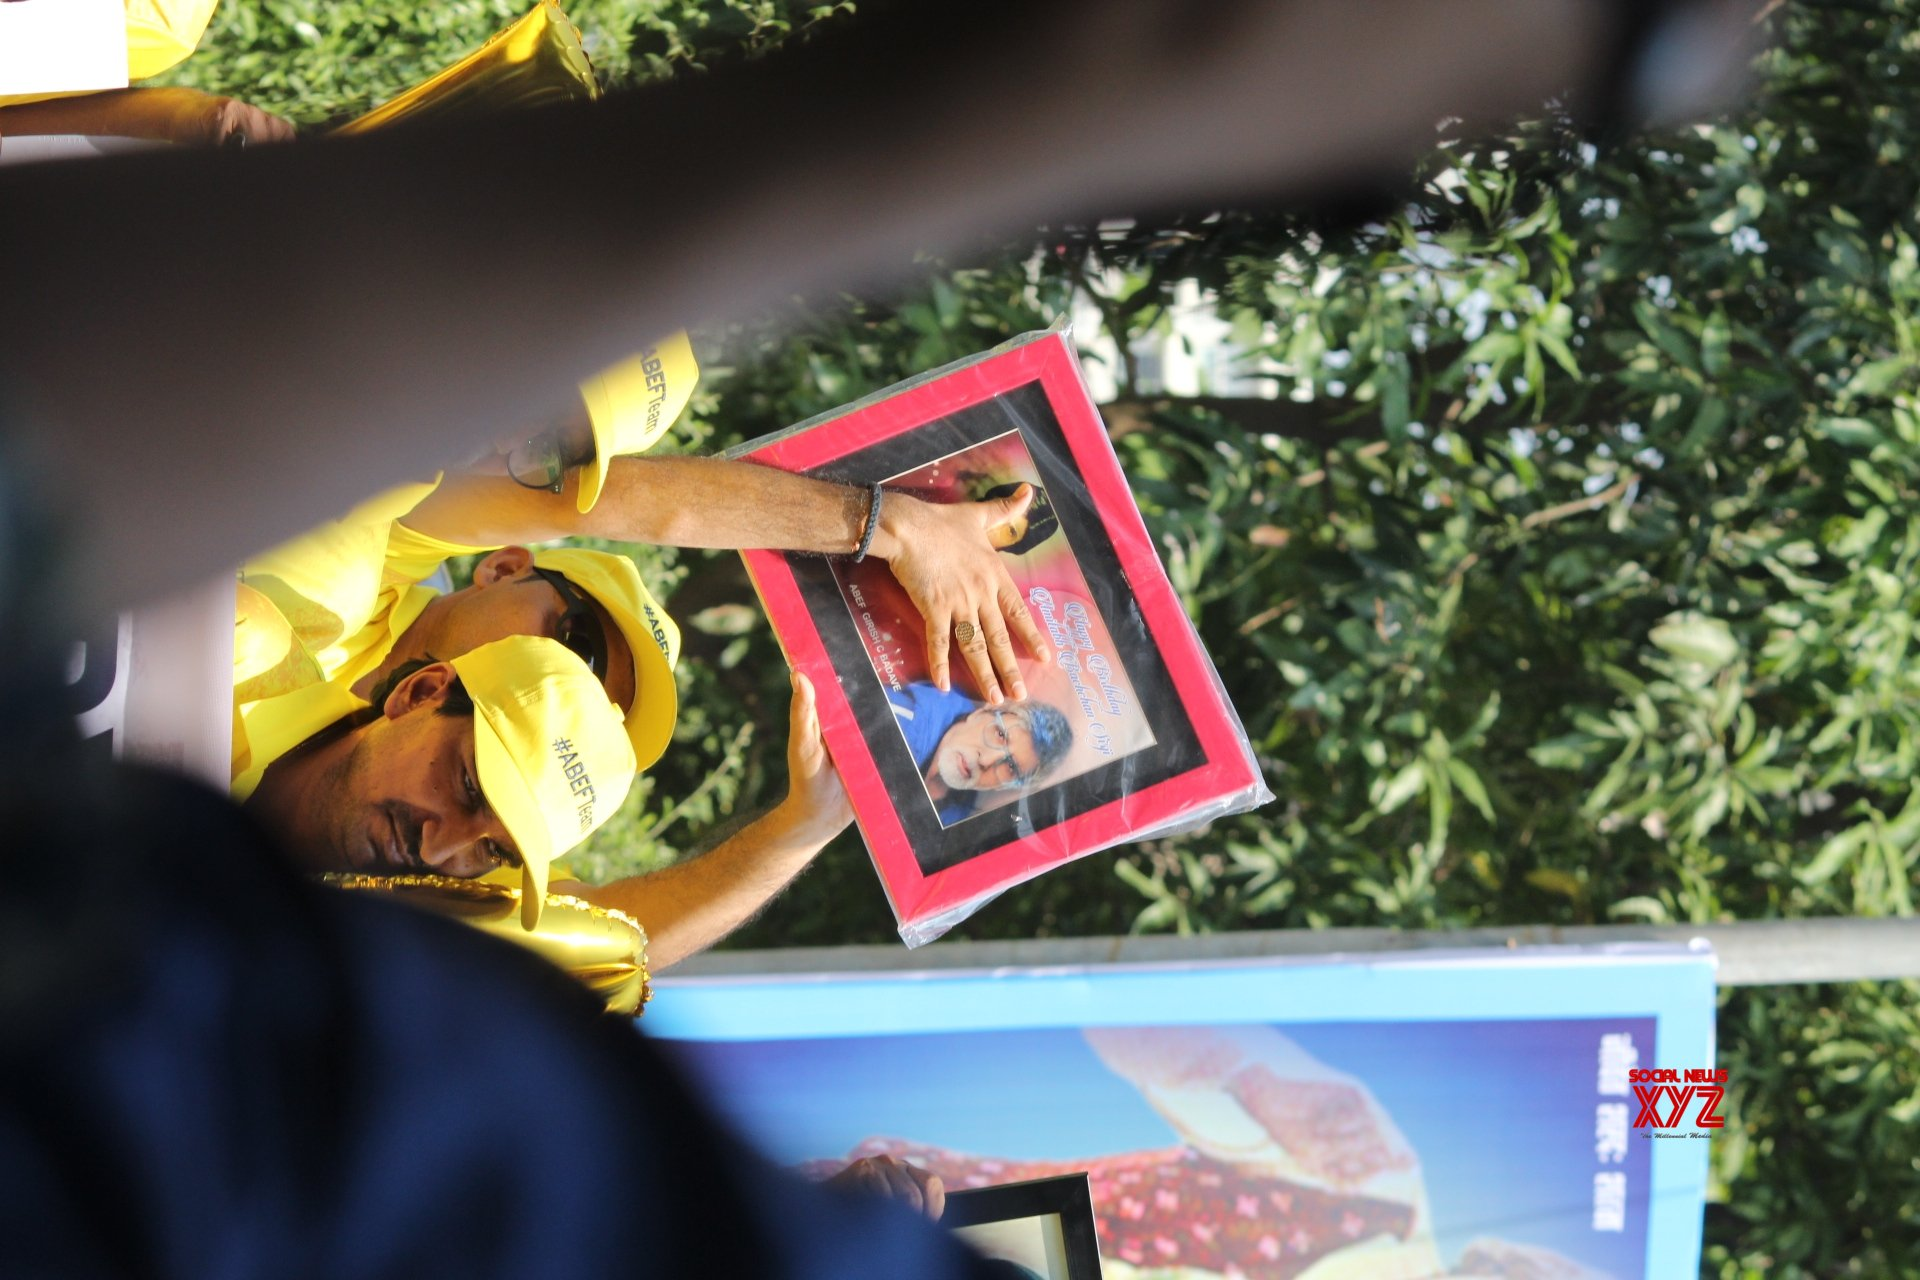 Mumbai: Amitabh Bachchan greets fans outside his residence on 77th birthday #Gallery